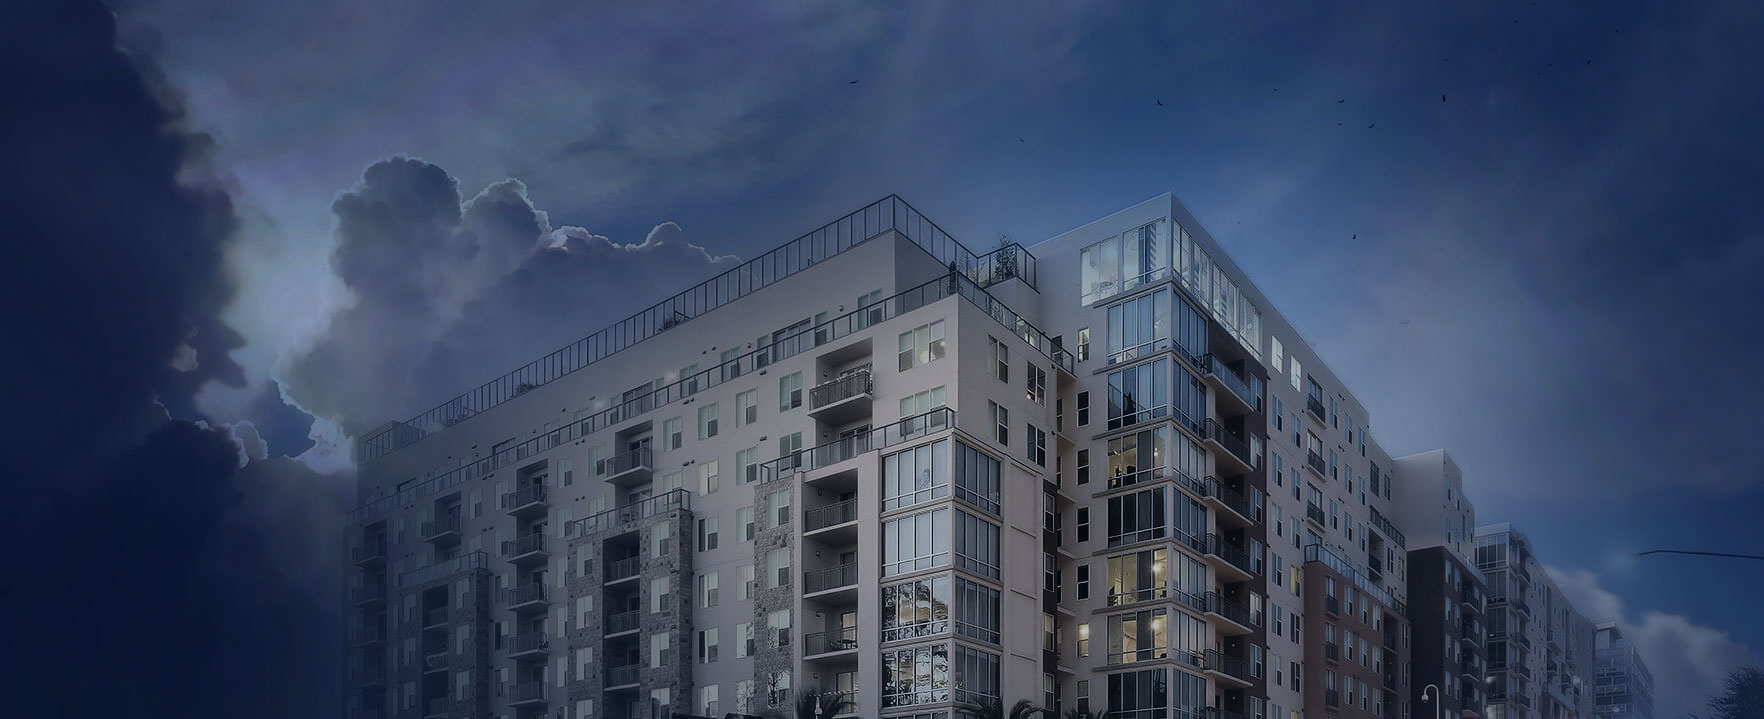 W5 Group Launches US Student Housing Investment Program with 602-Bedroom State-of-the-Art Development at One of the Largest US Universities